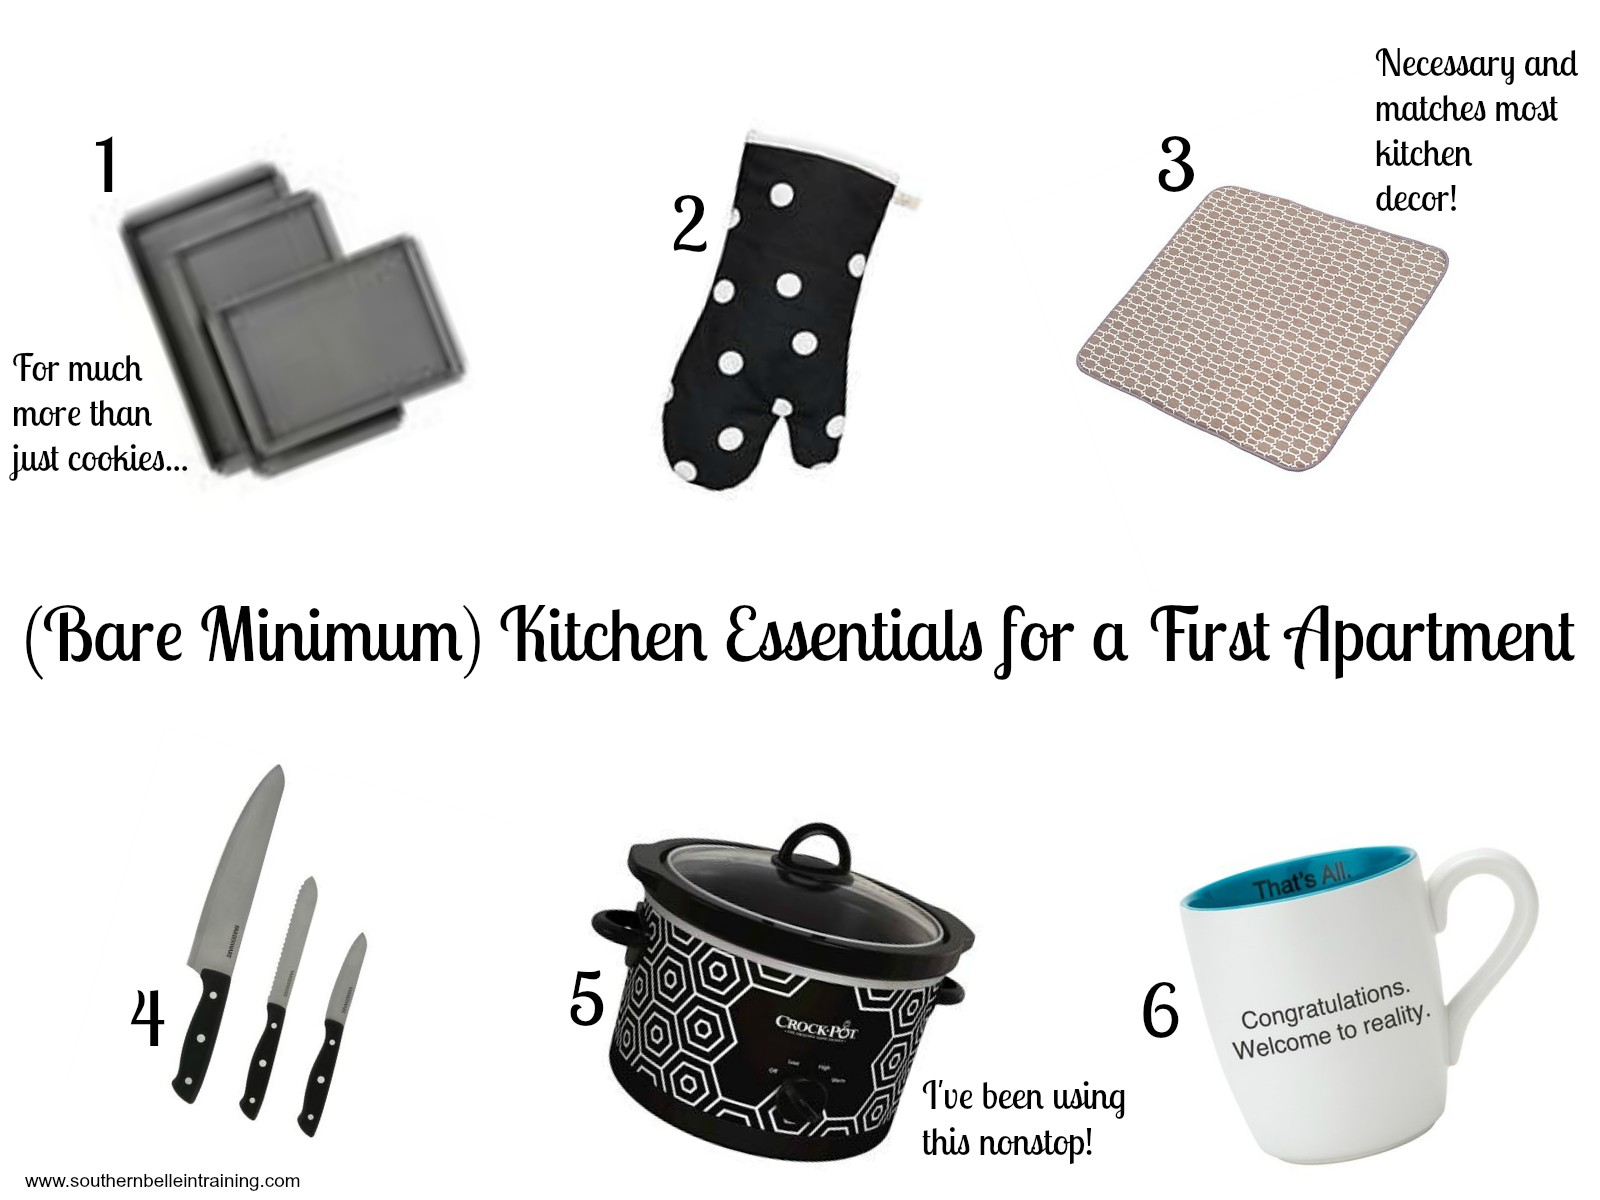 Southern Belle in Training Bare Minimum Kitchen Essentials for